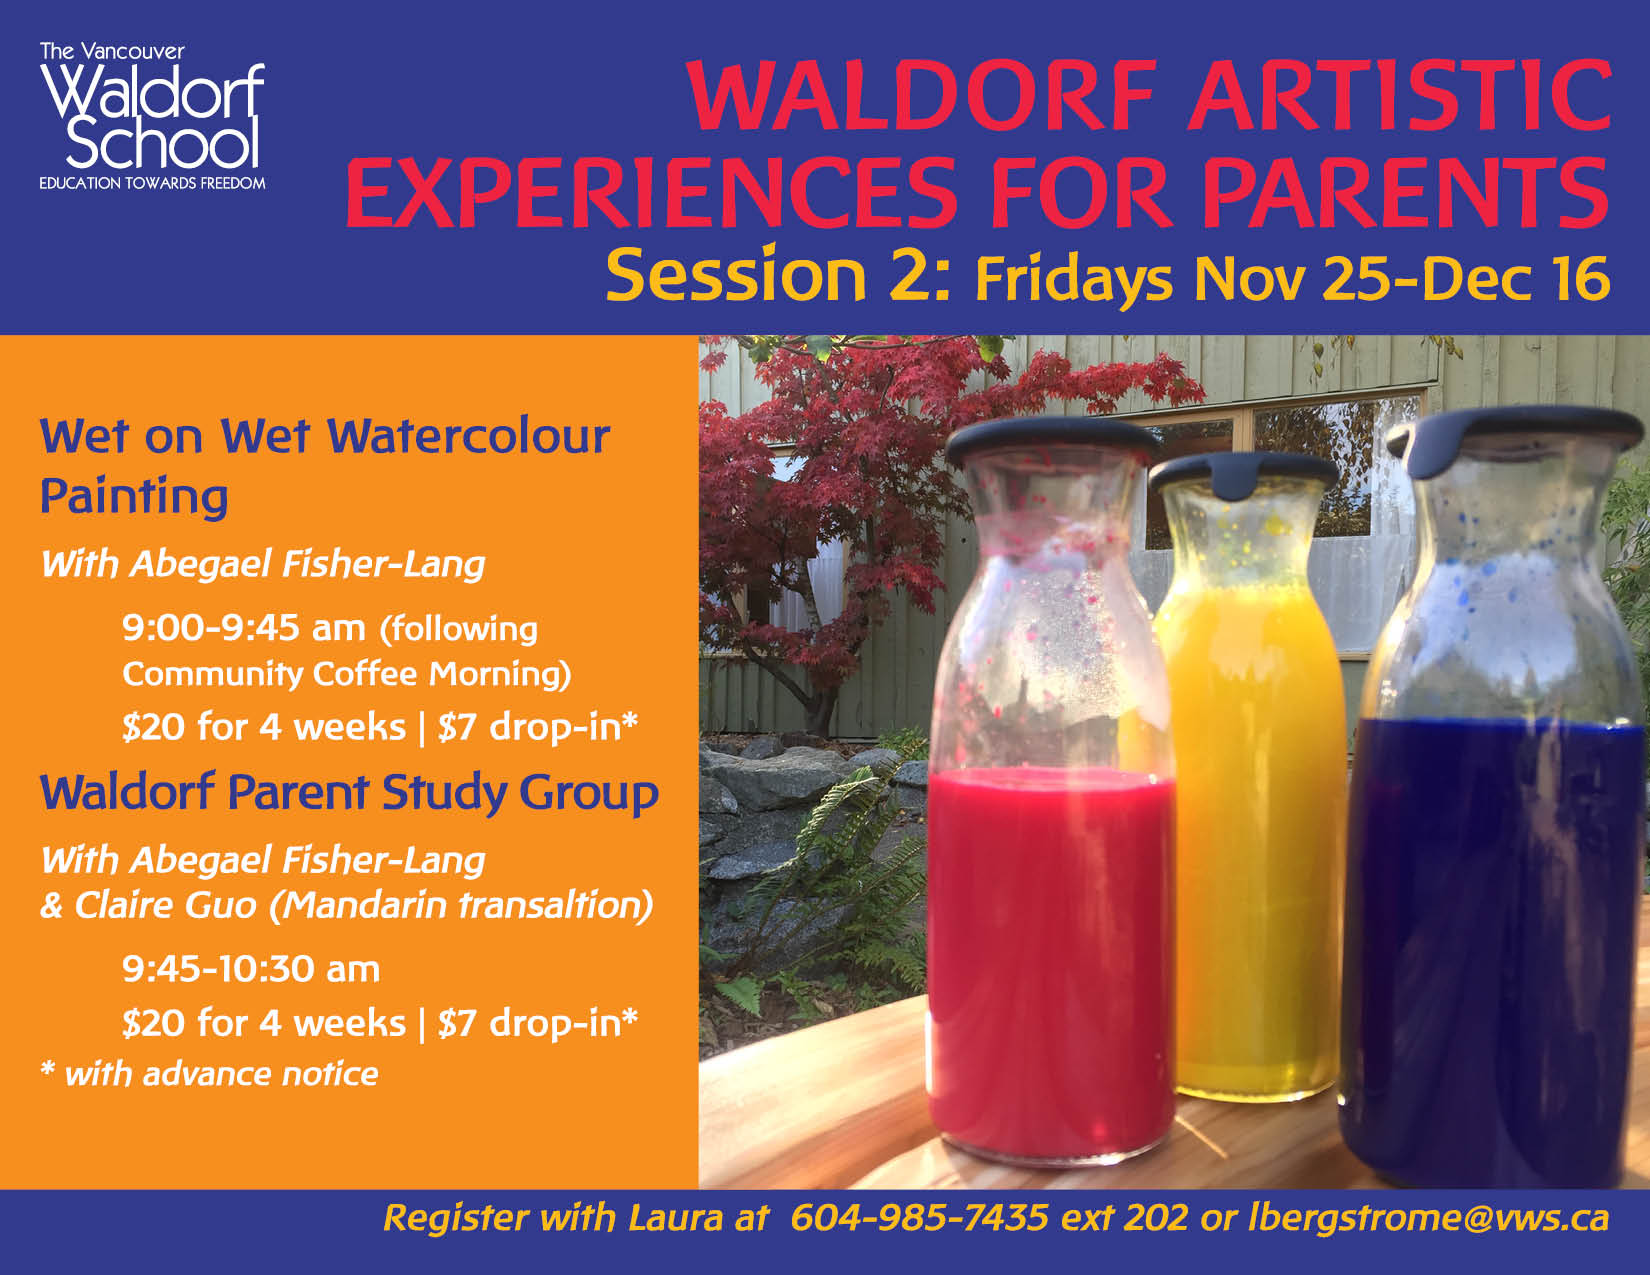 Waldorf Artistic Experiences for Parents